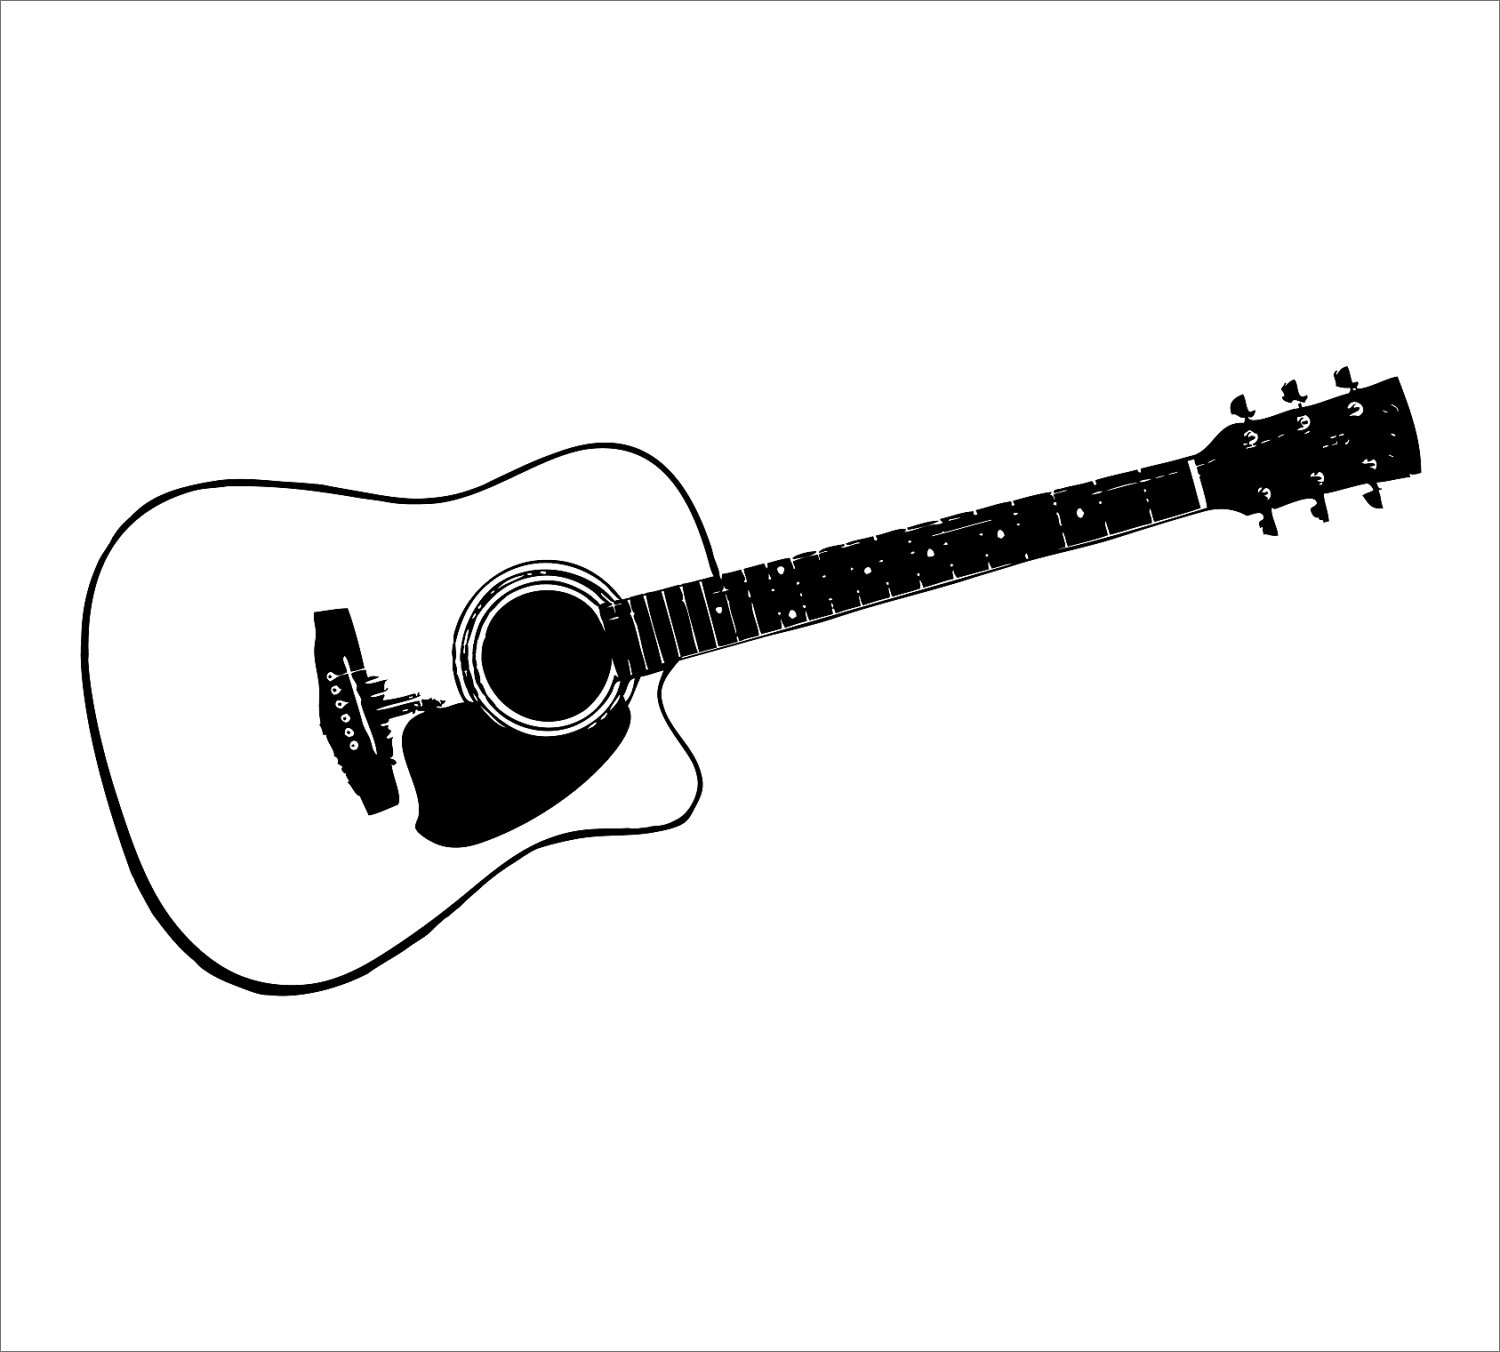 15 Acoustic Guitar Pictures Black and White Compilation.